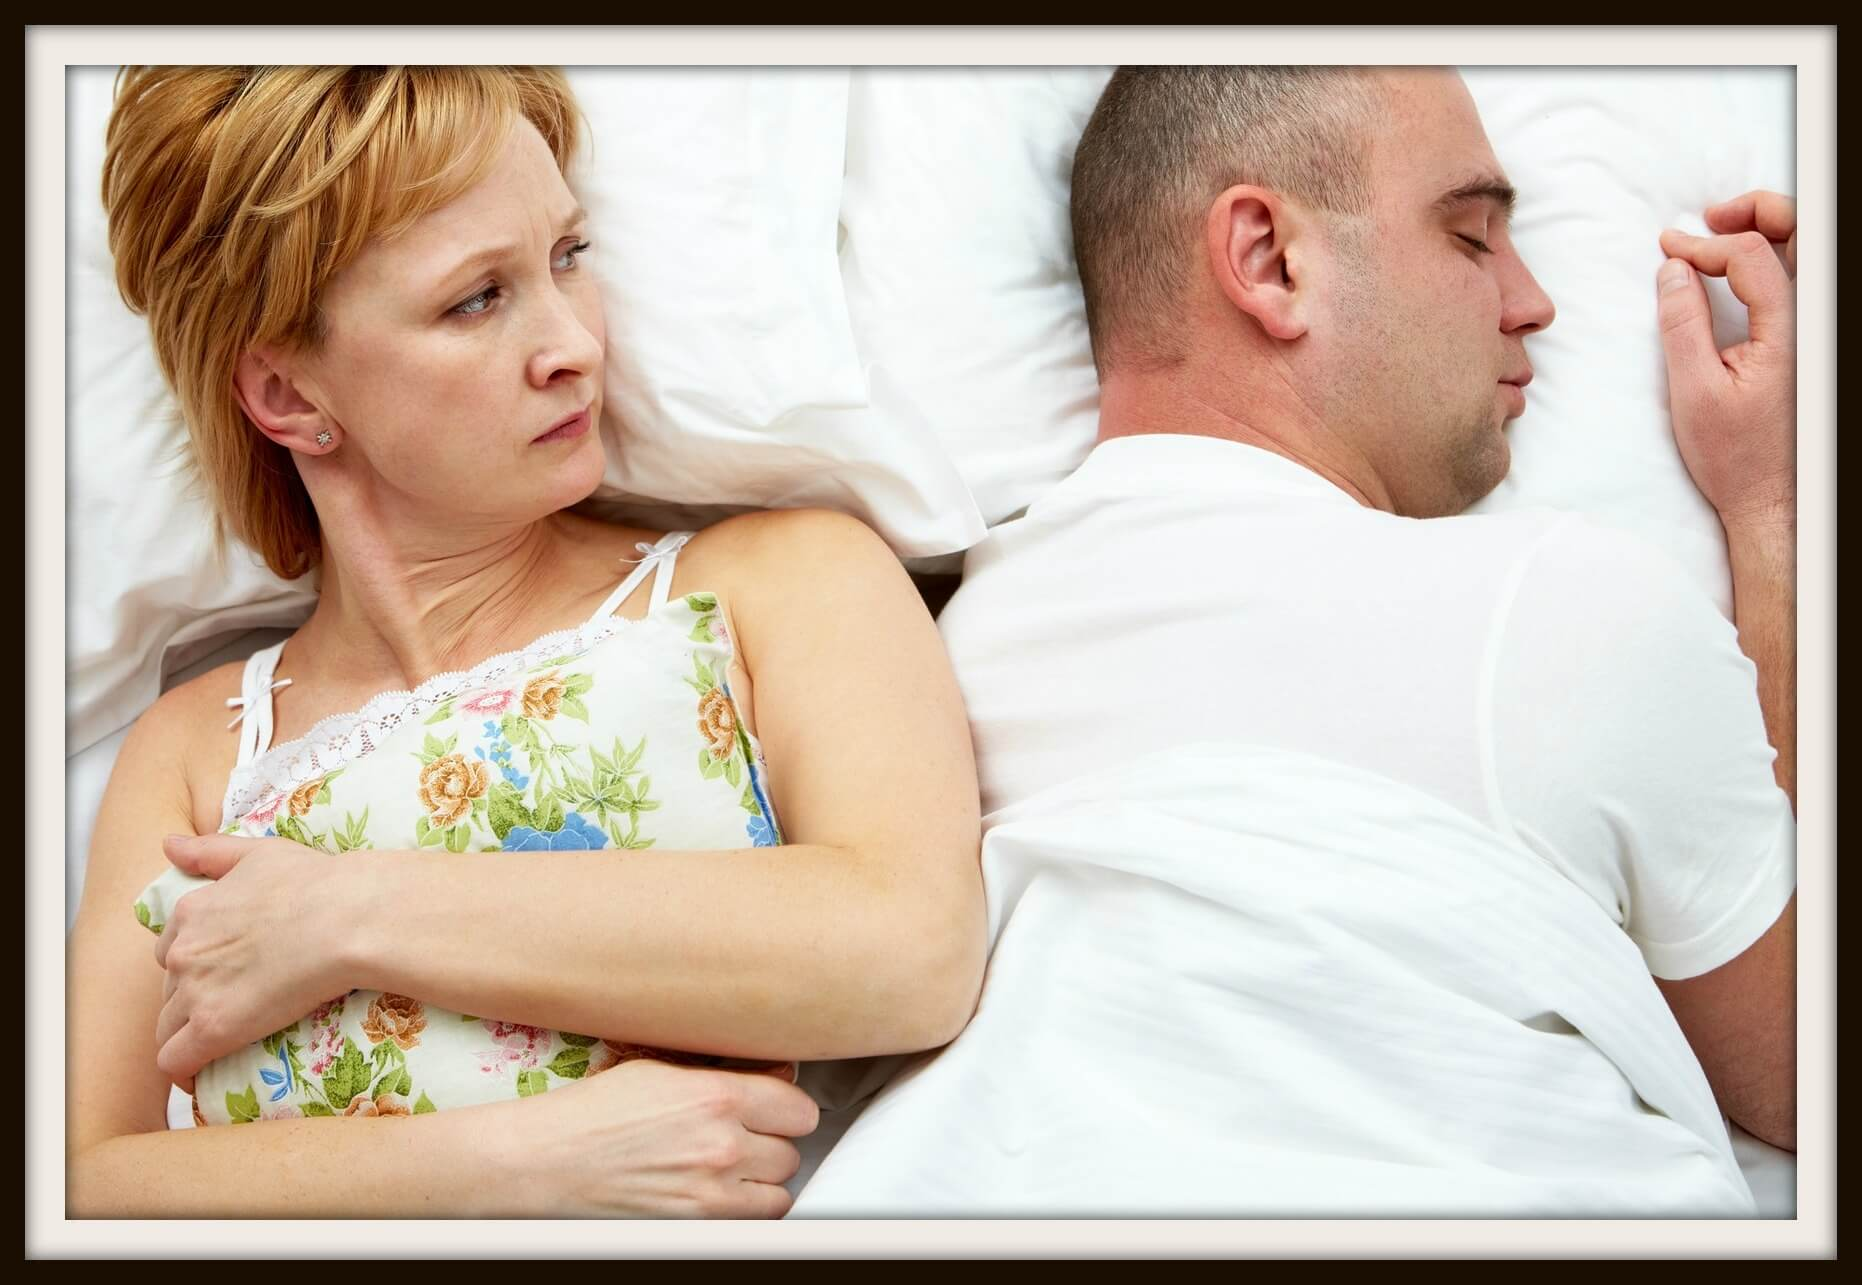 Photo of displeased wife holding pillow looking her husband